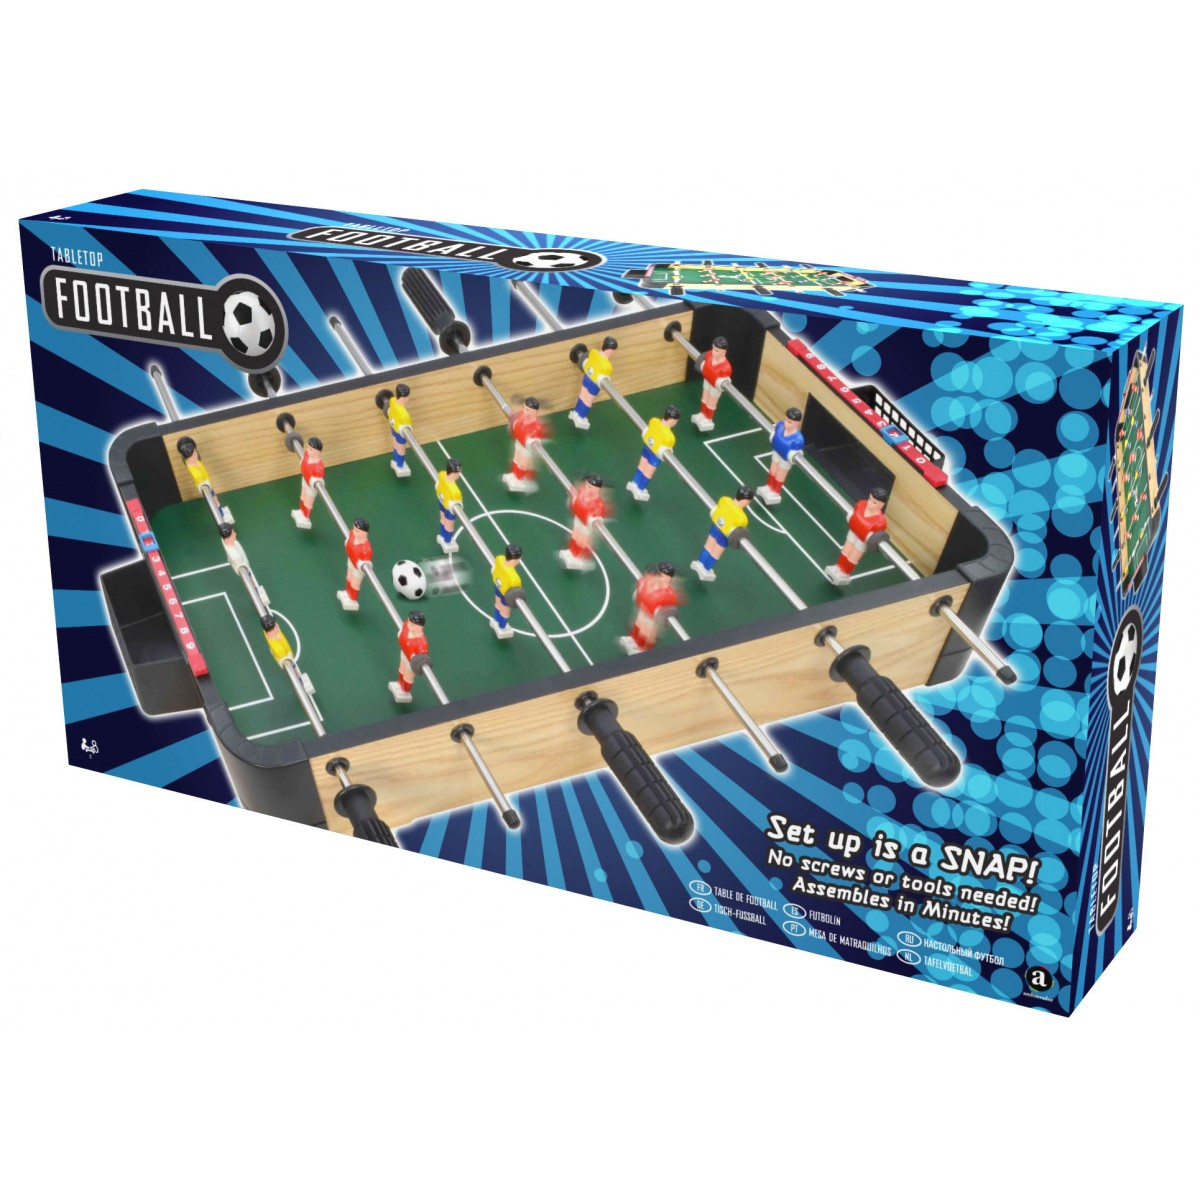 24  (60cm) Wood Tabletop Football (Foosball / Soccer)  sc 1 st  Merchant Ambassador & 24